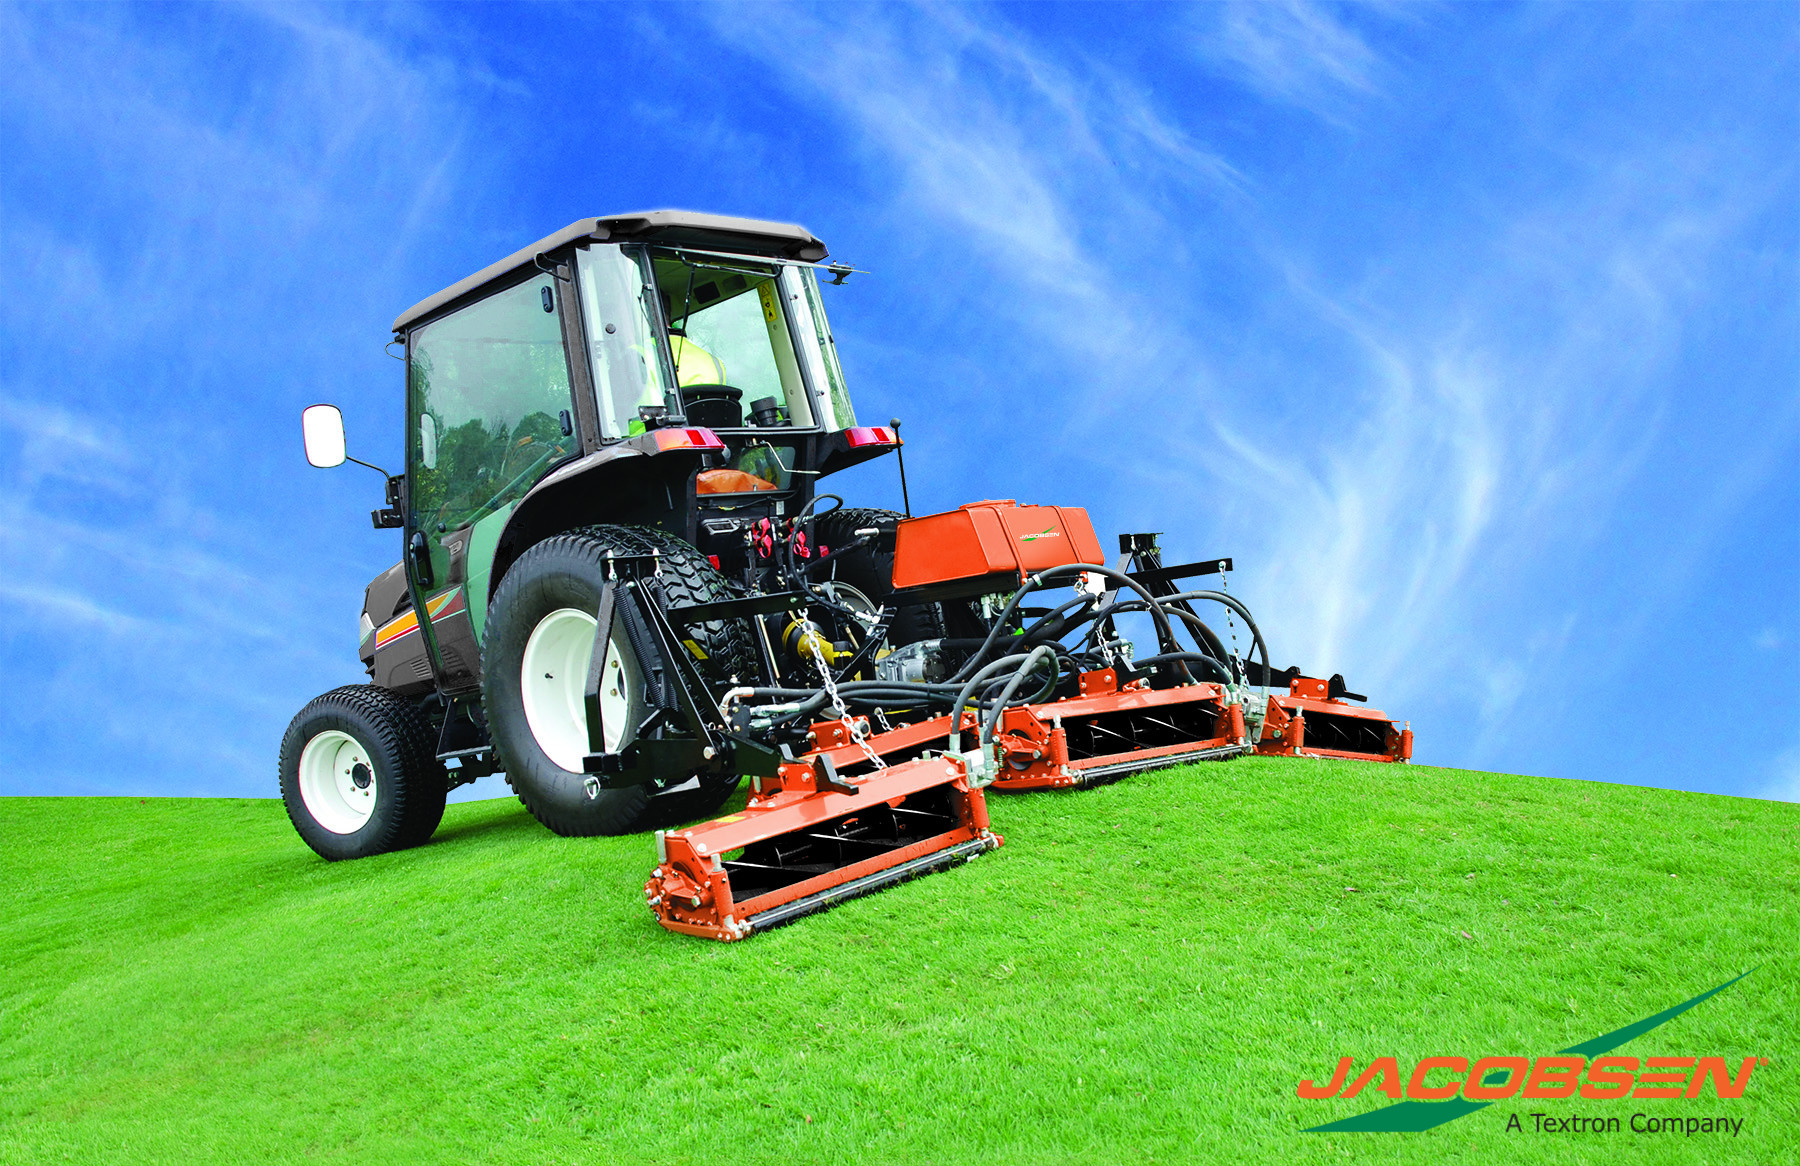 Jacobsen Mower Parts Aftermarket - Year of Clean Water